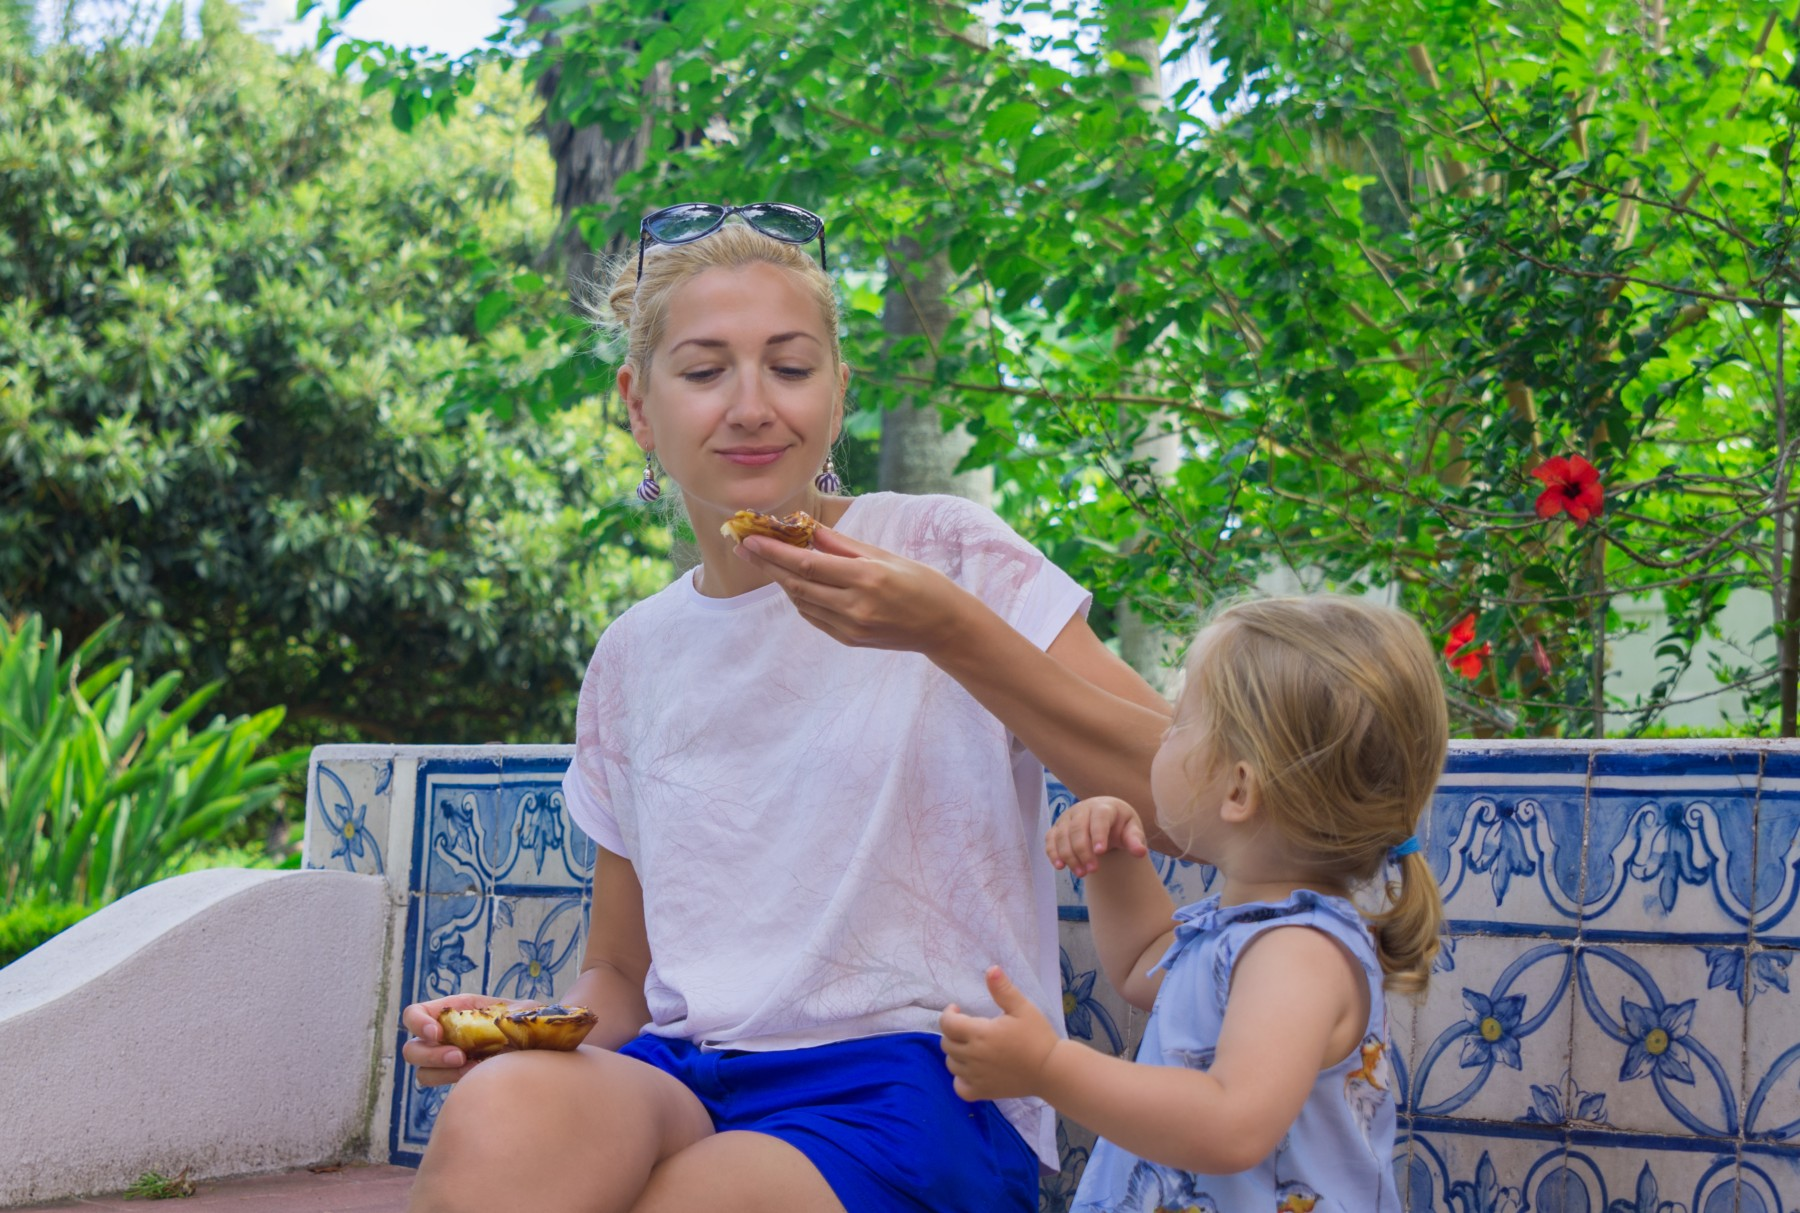 Portuguese cuisine, mother and daughter eating pastry